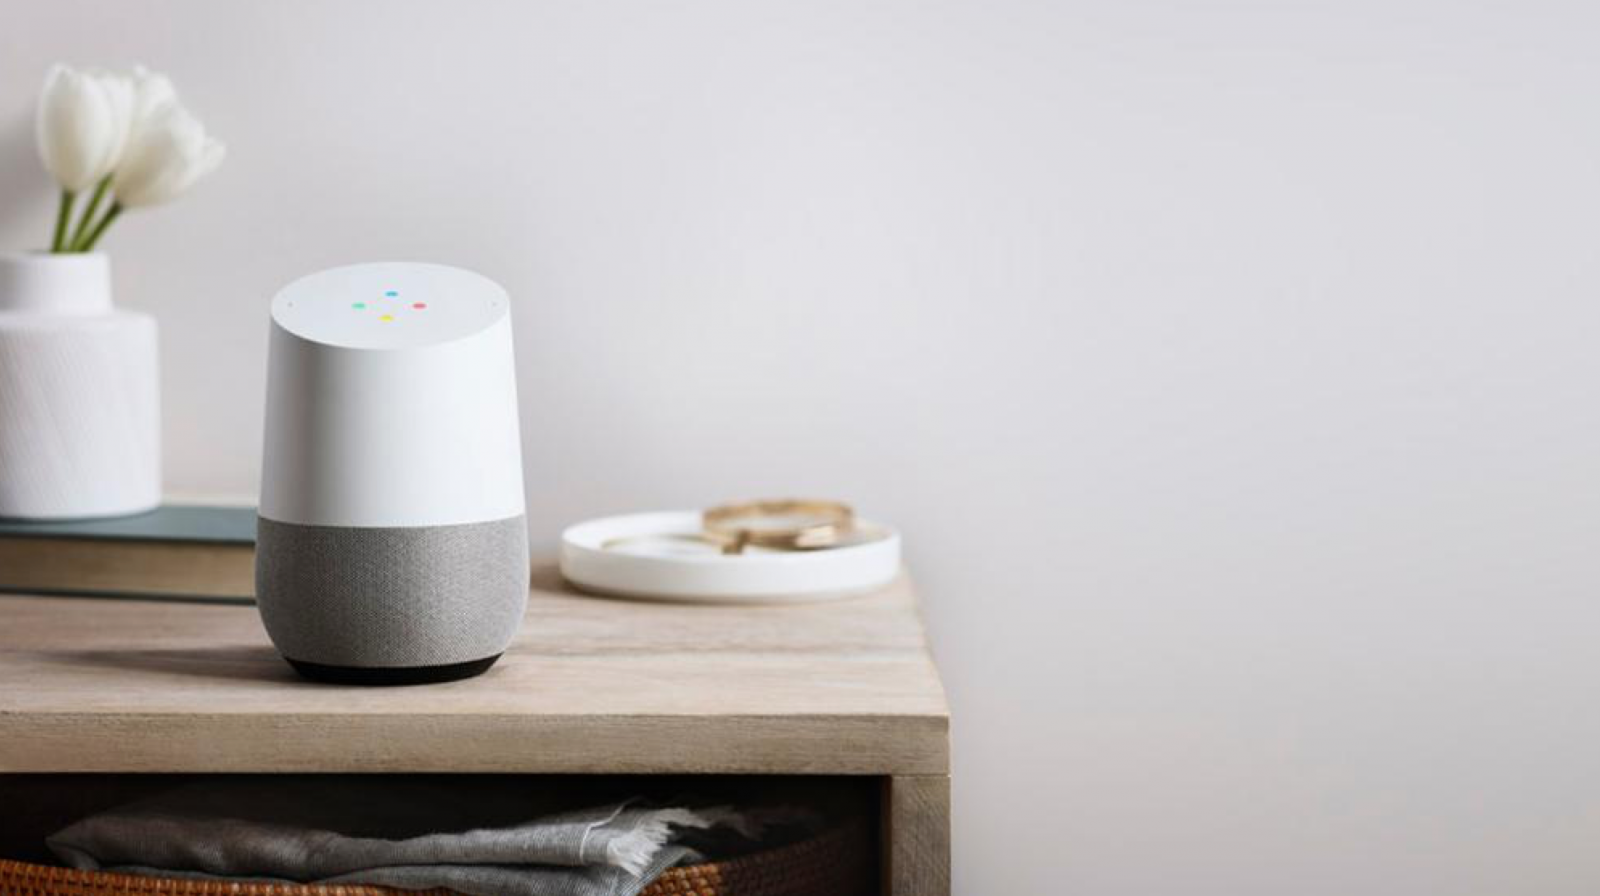 When Is Google Home Coming To The Uk And How Much Will It